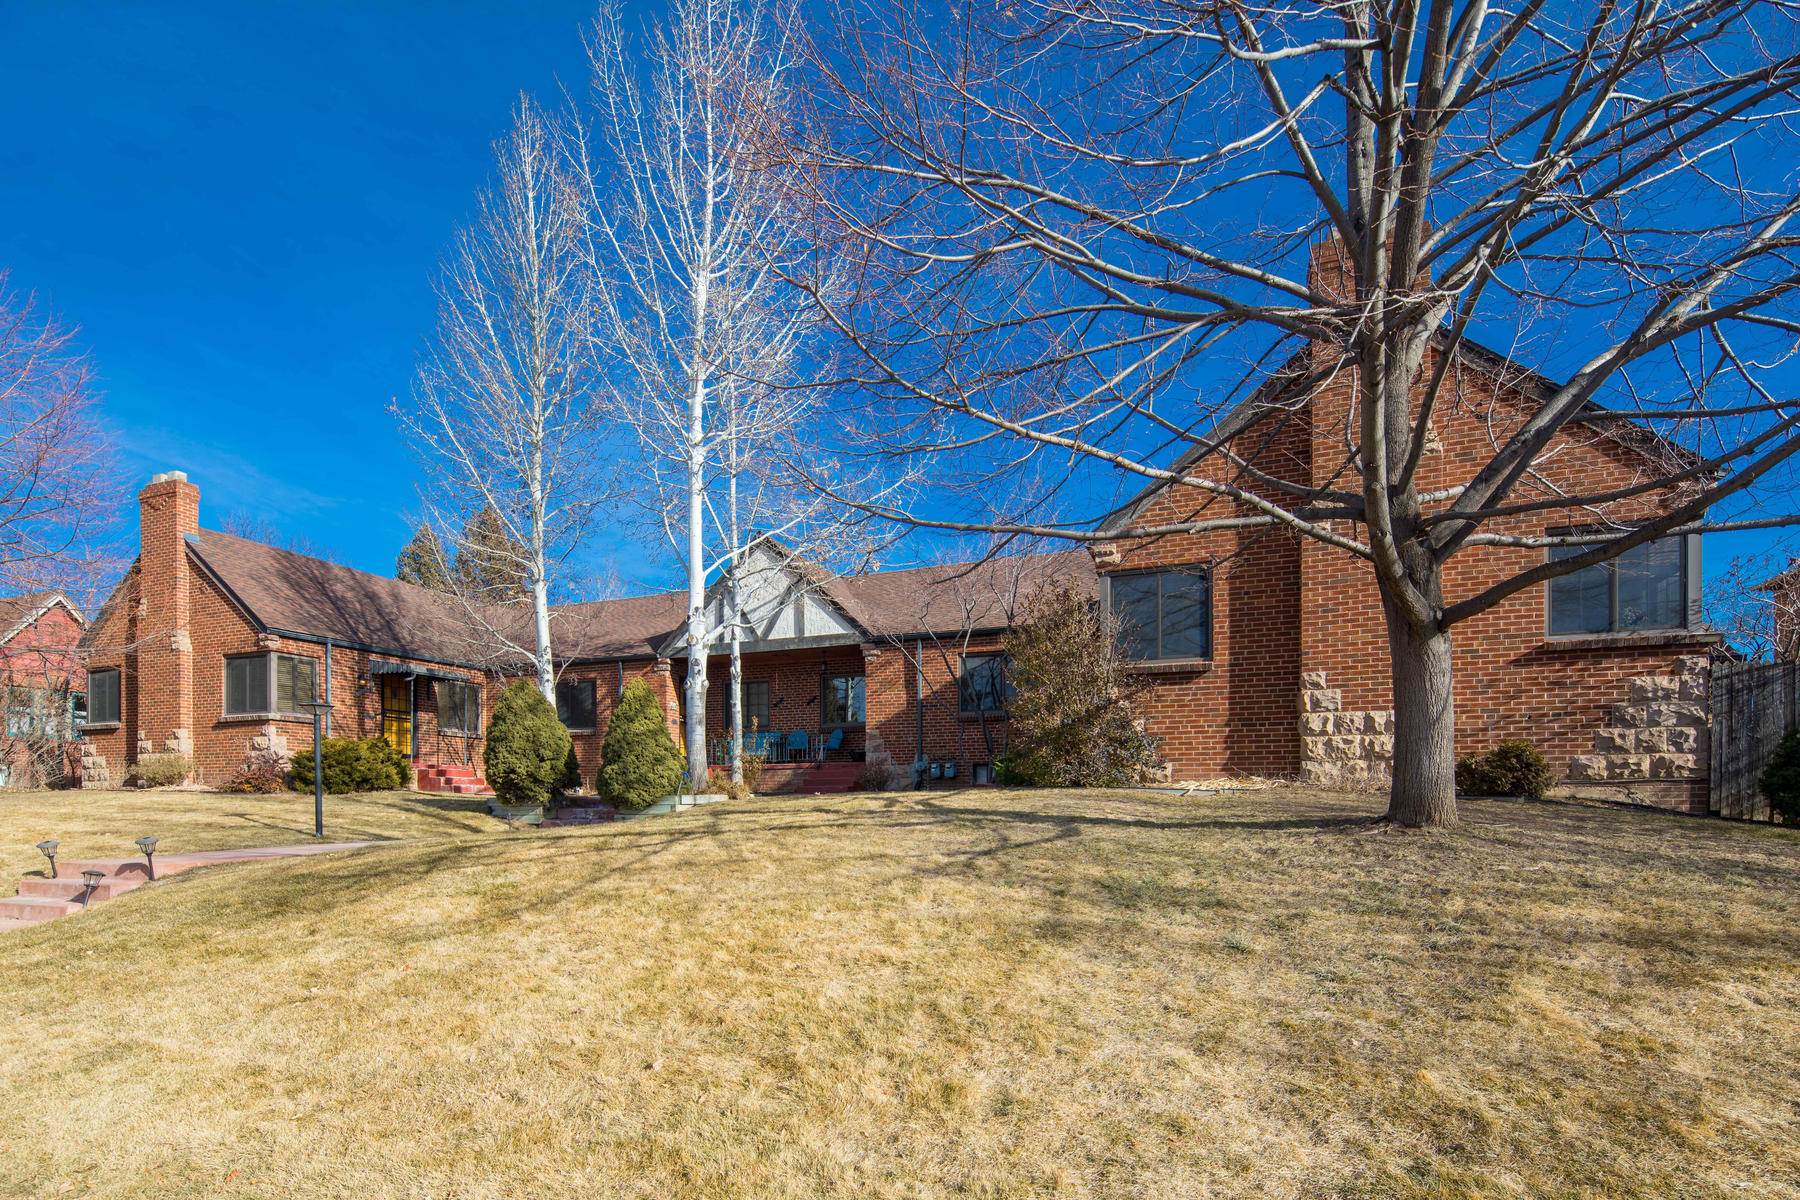 Single Family Home for Active at 1416 Locust St. 1416 Locust St. Denver, Colorado 80220 United States